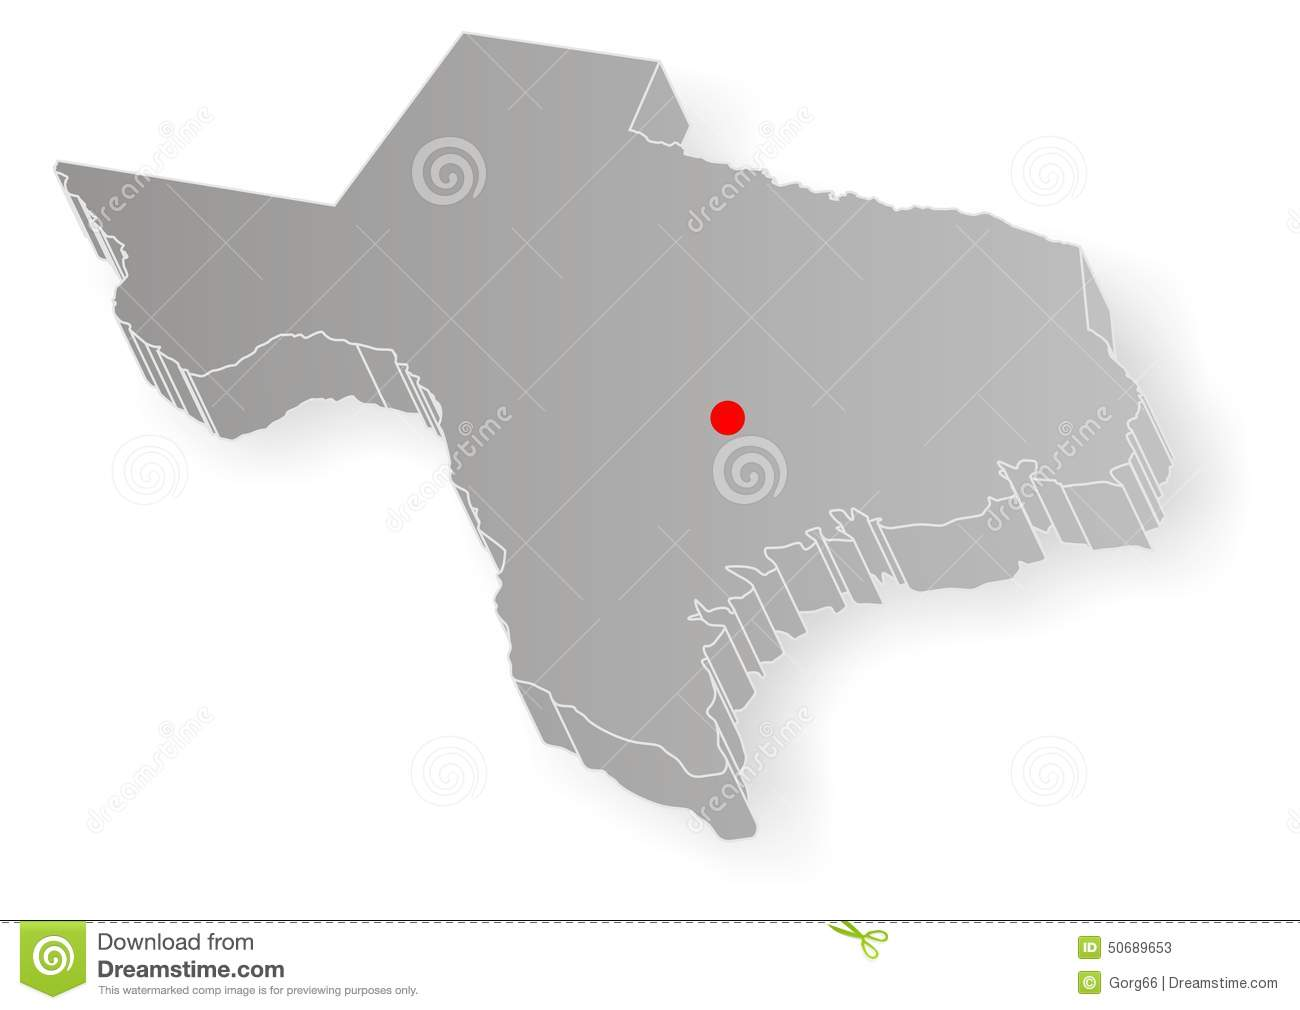 Texas State Map Stock Vector - Image: 50689653